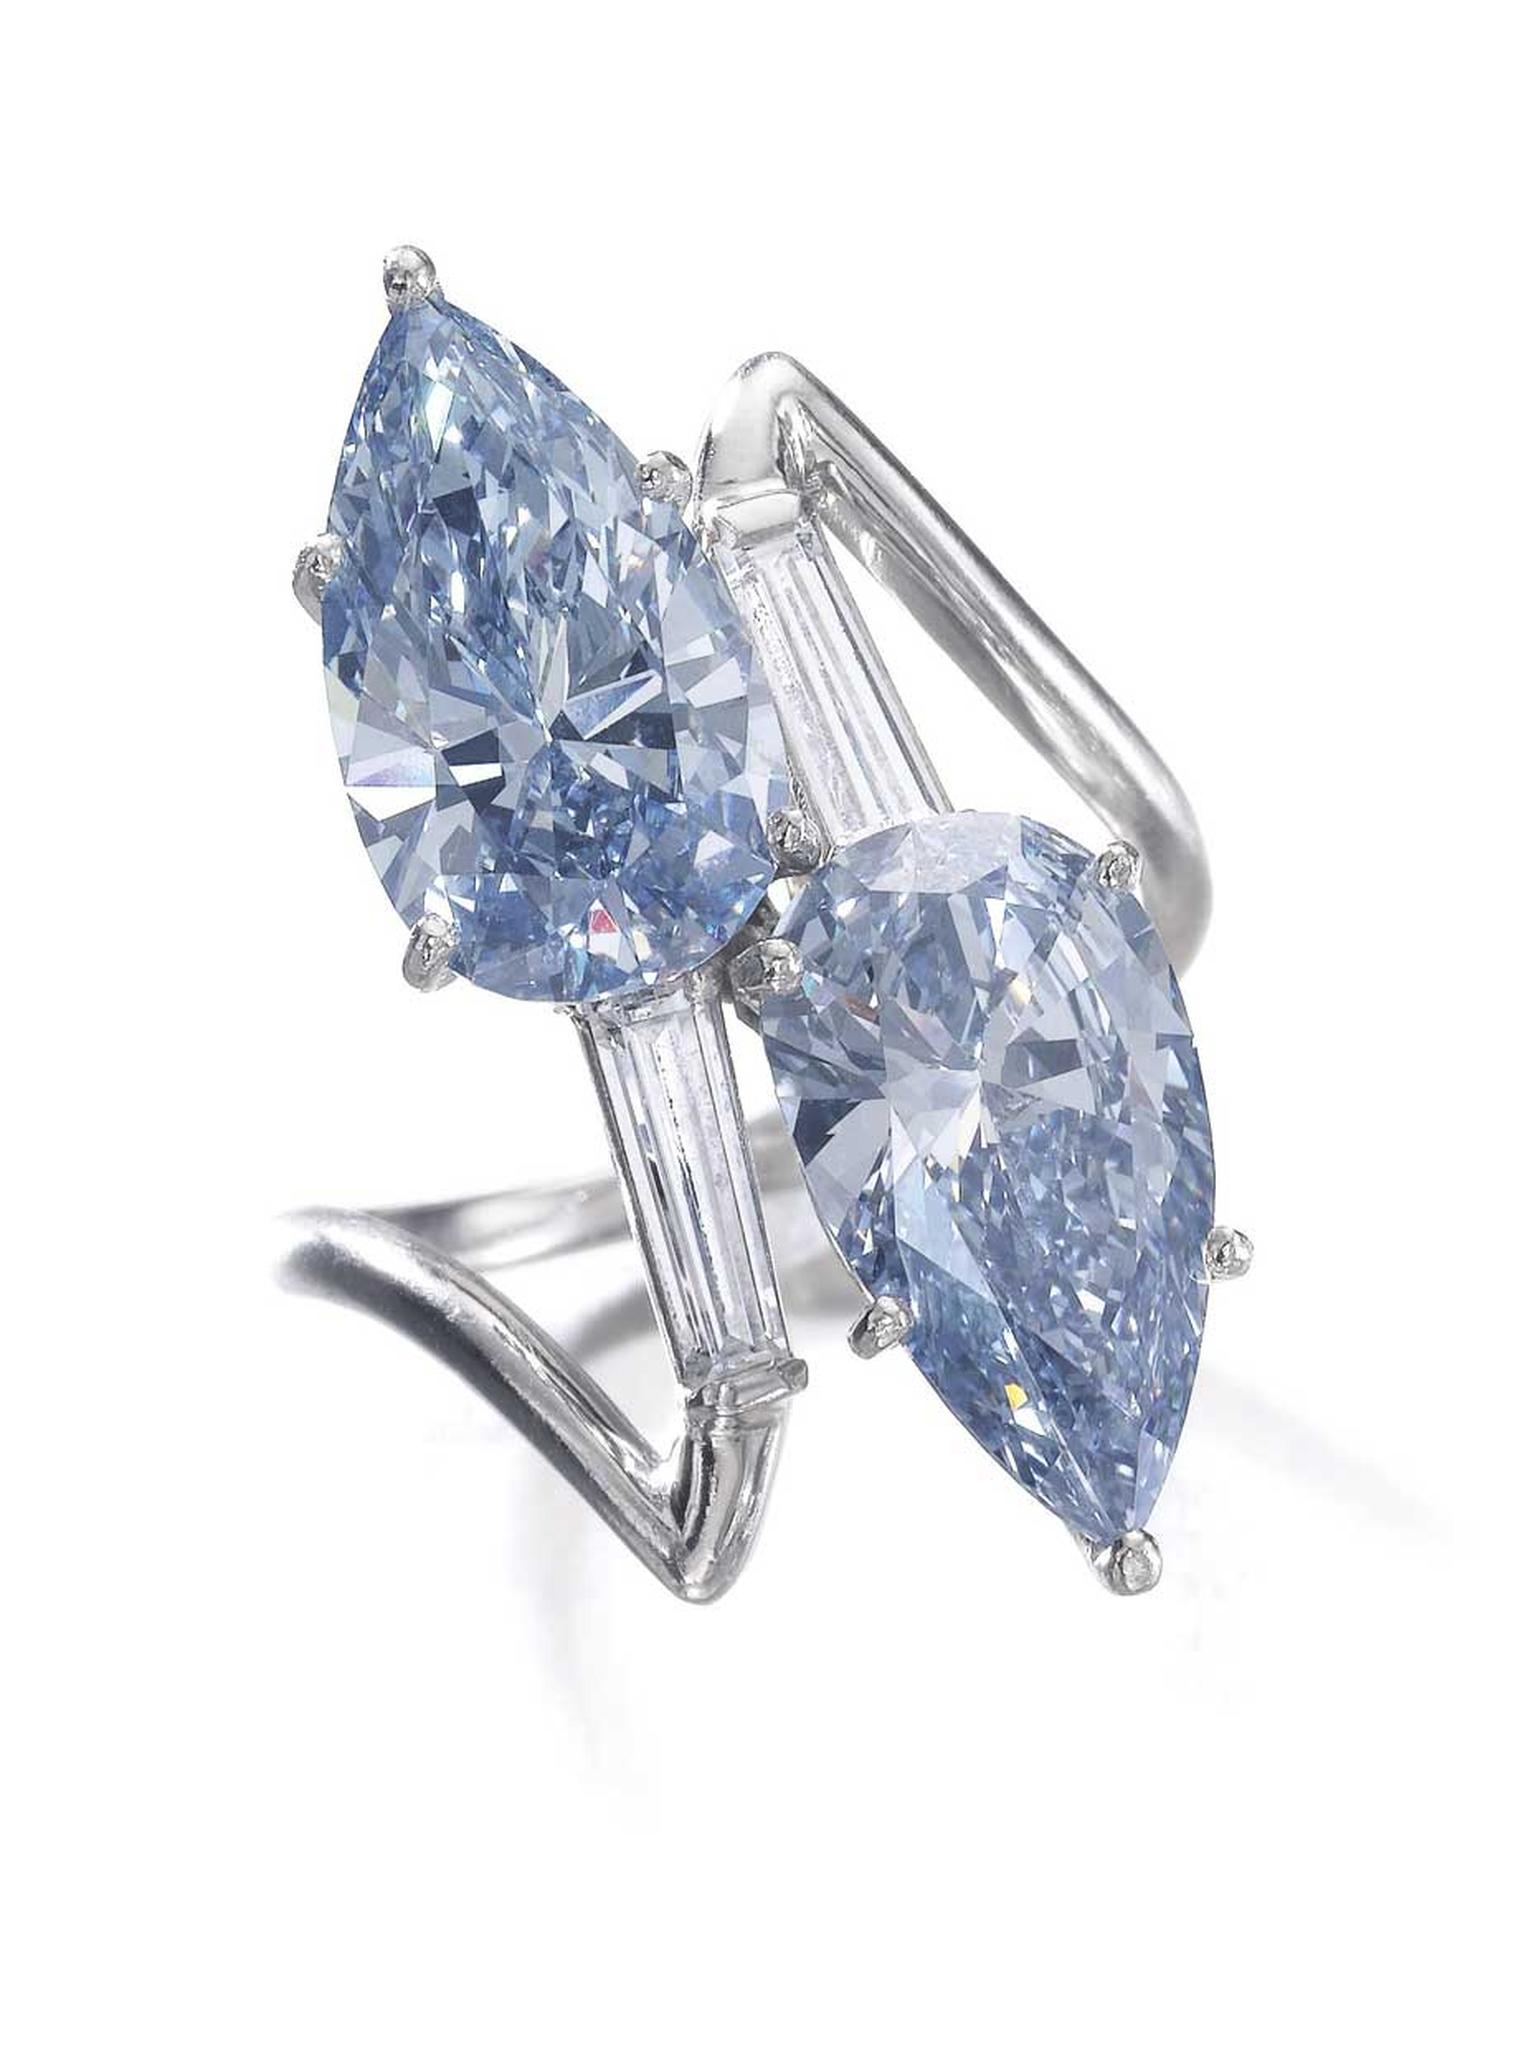 Fancy Vivid blue and Fancy Intense blue diamond ring with baguette diamonds. Sold for CHF 5,765,000 (estimate: 3,570,000-6,200,000)